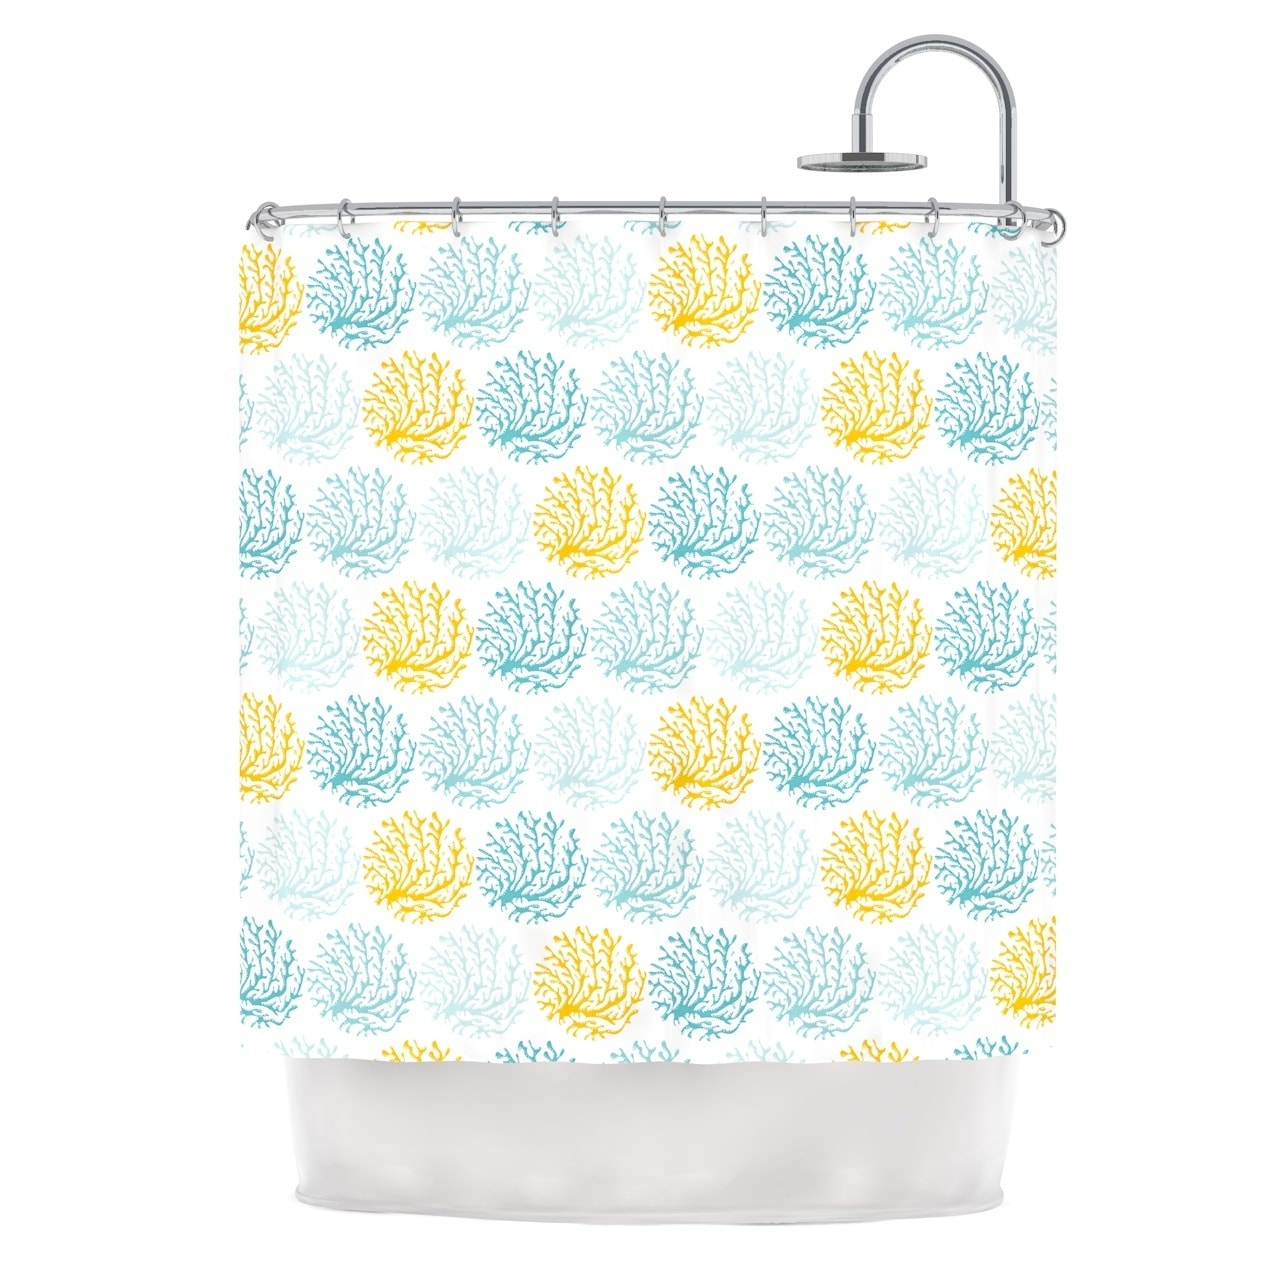 Kess InHouse Anchobee Coralina Teal Yellow Shower Curtain...